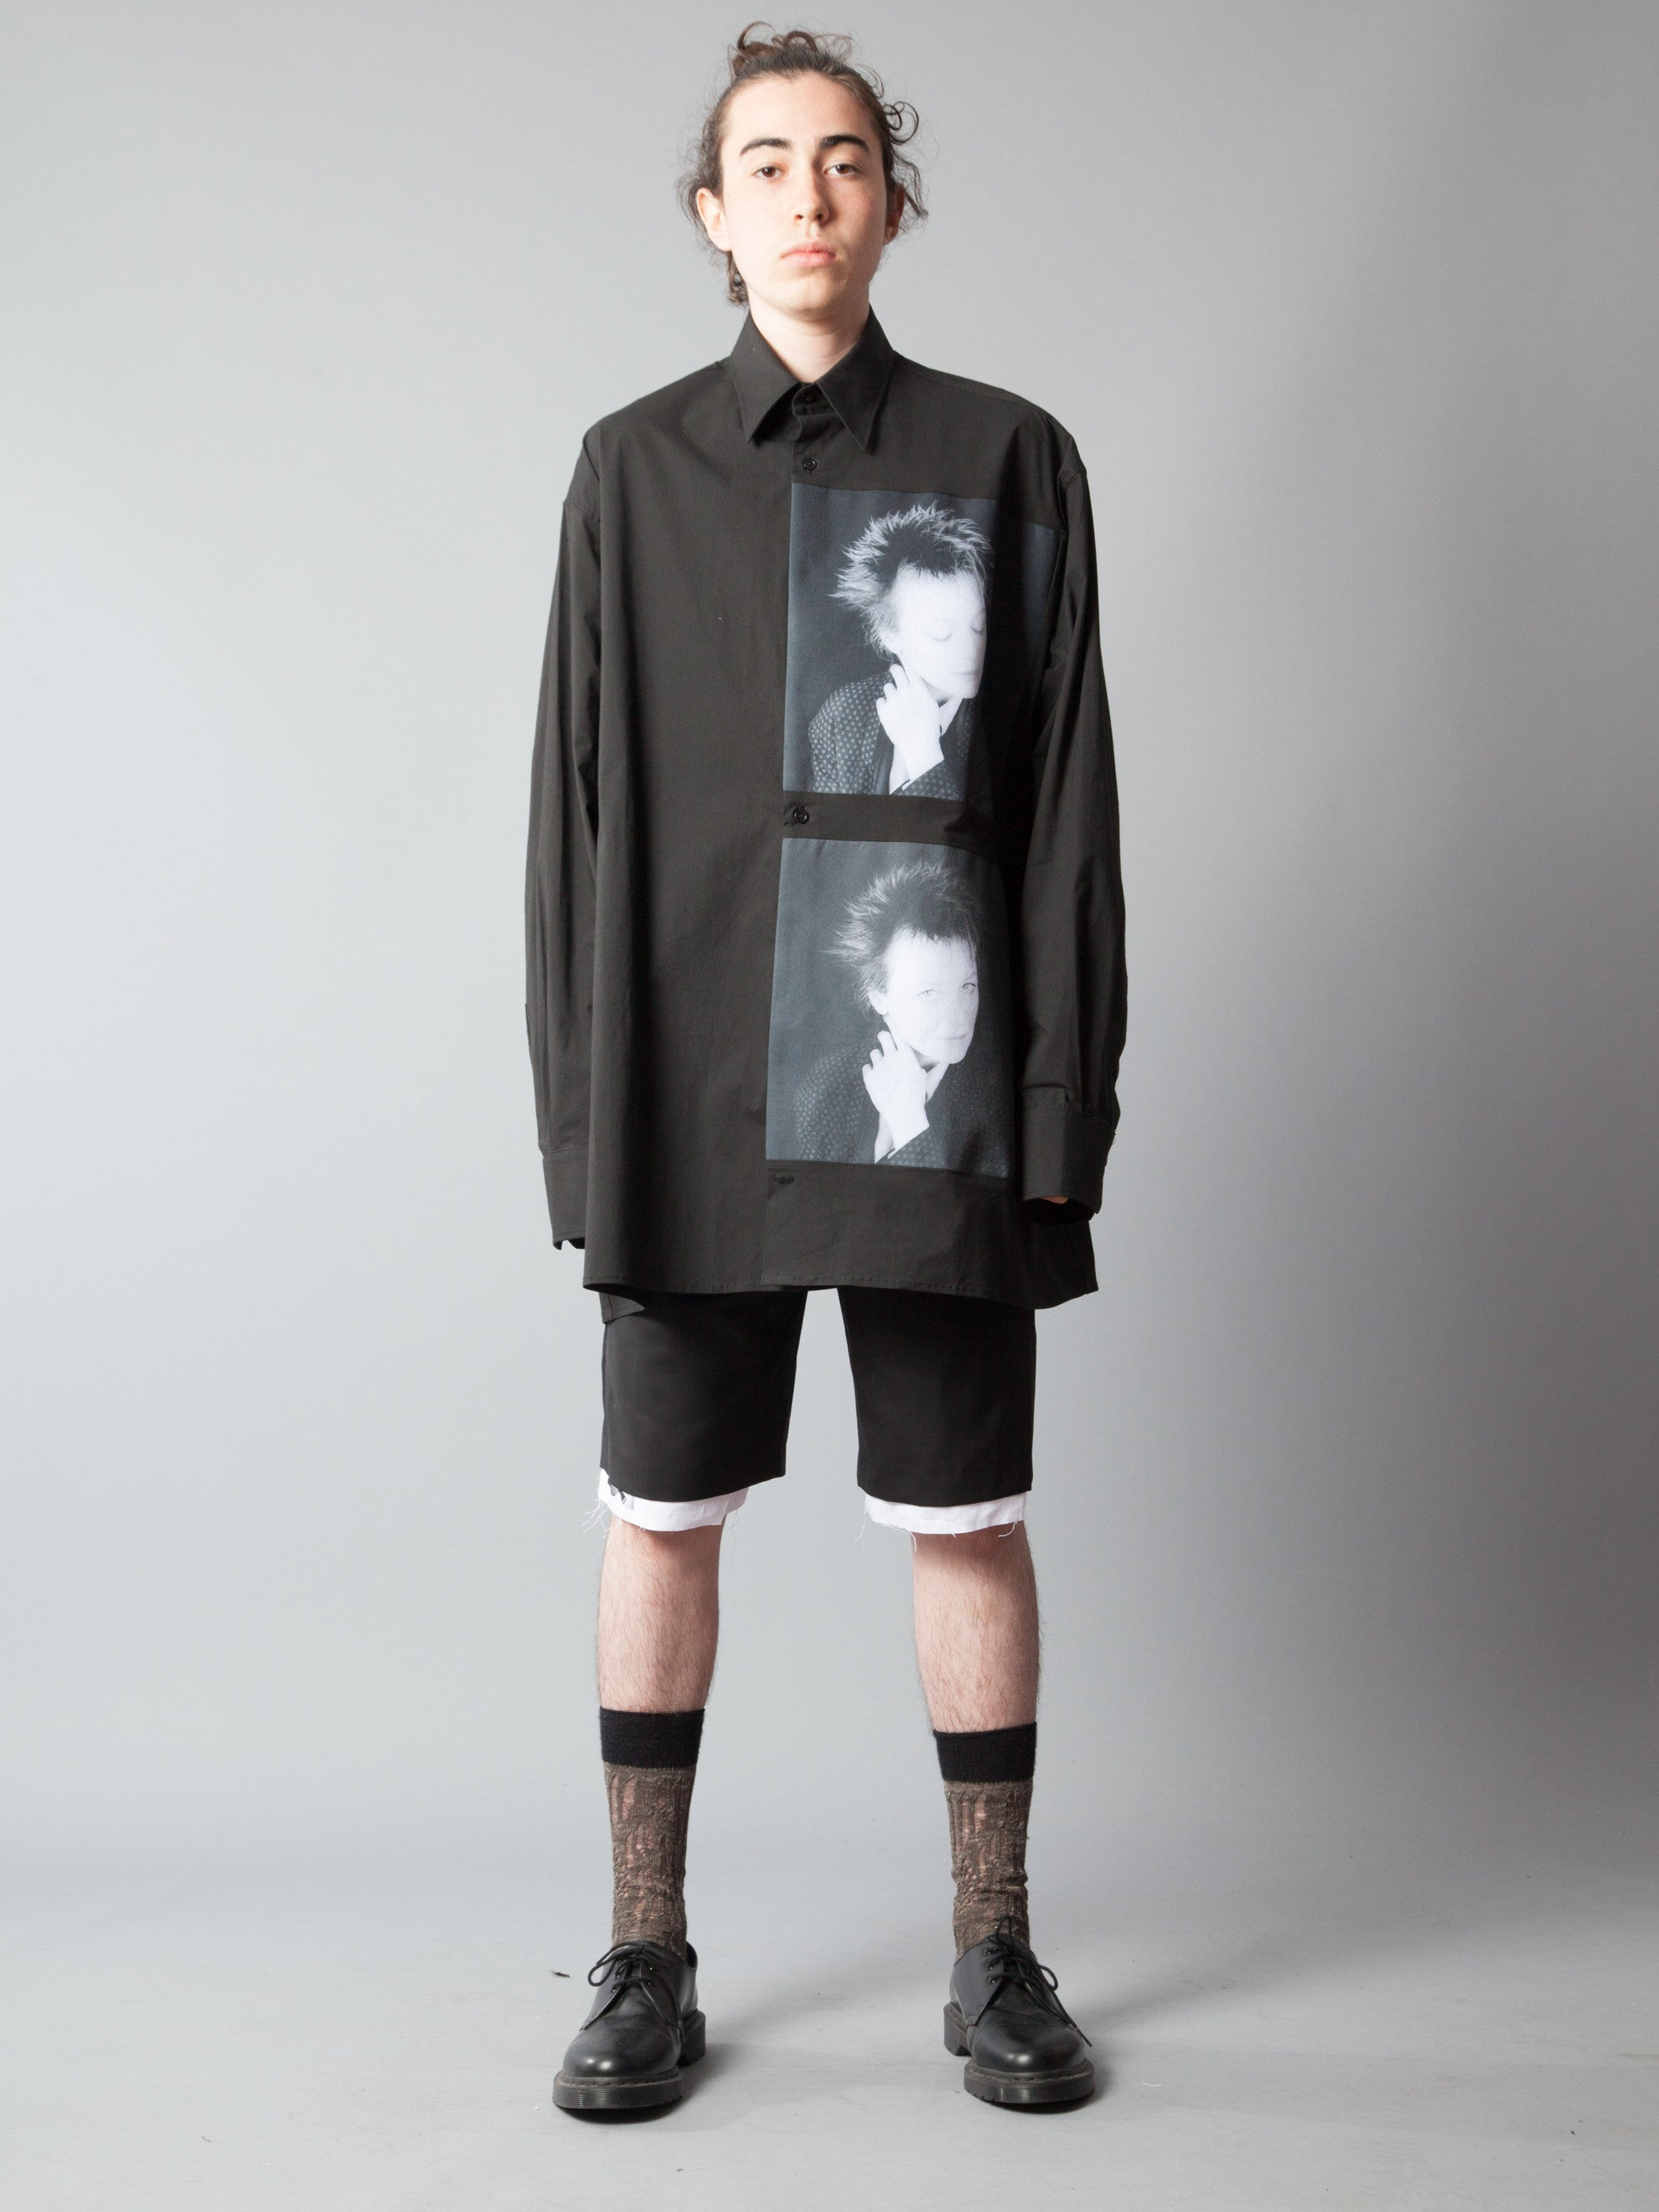 Black Oversized Shirt (Laurie Anderson, 1987) 2